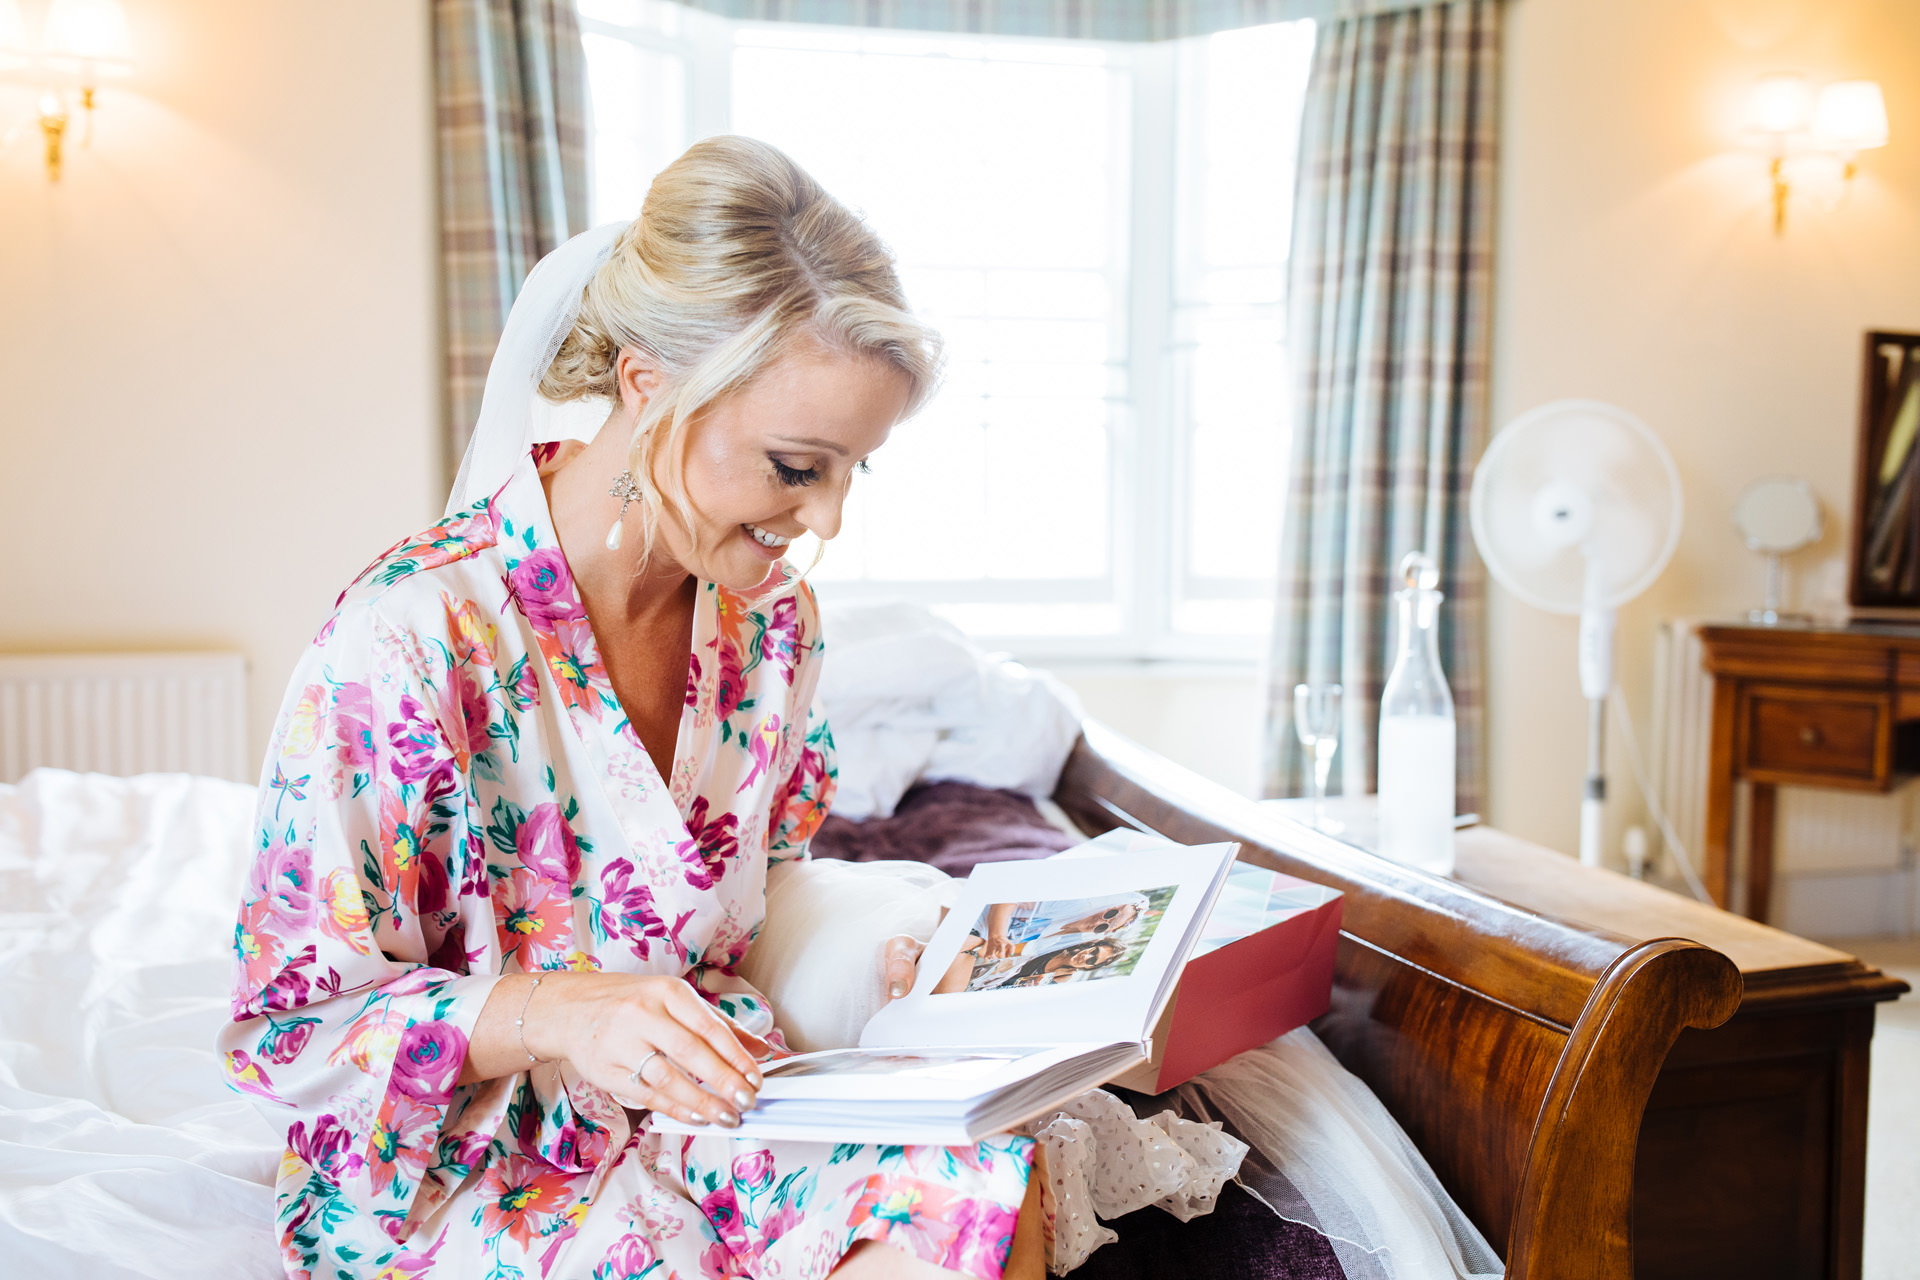 bride in floral dressing gown and veil reads surprise photo album